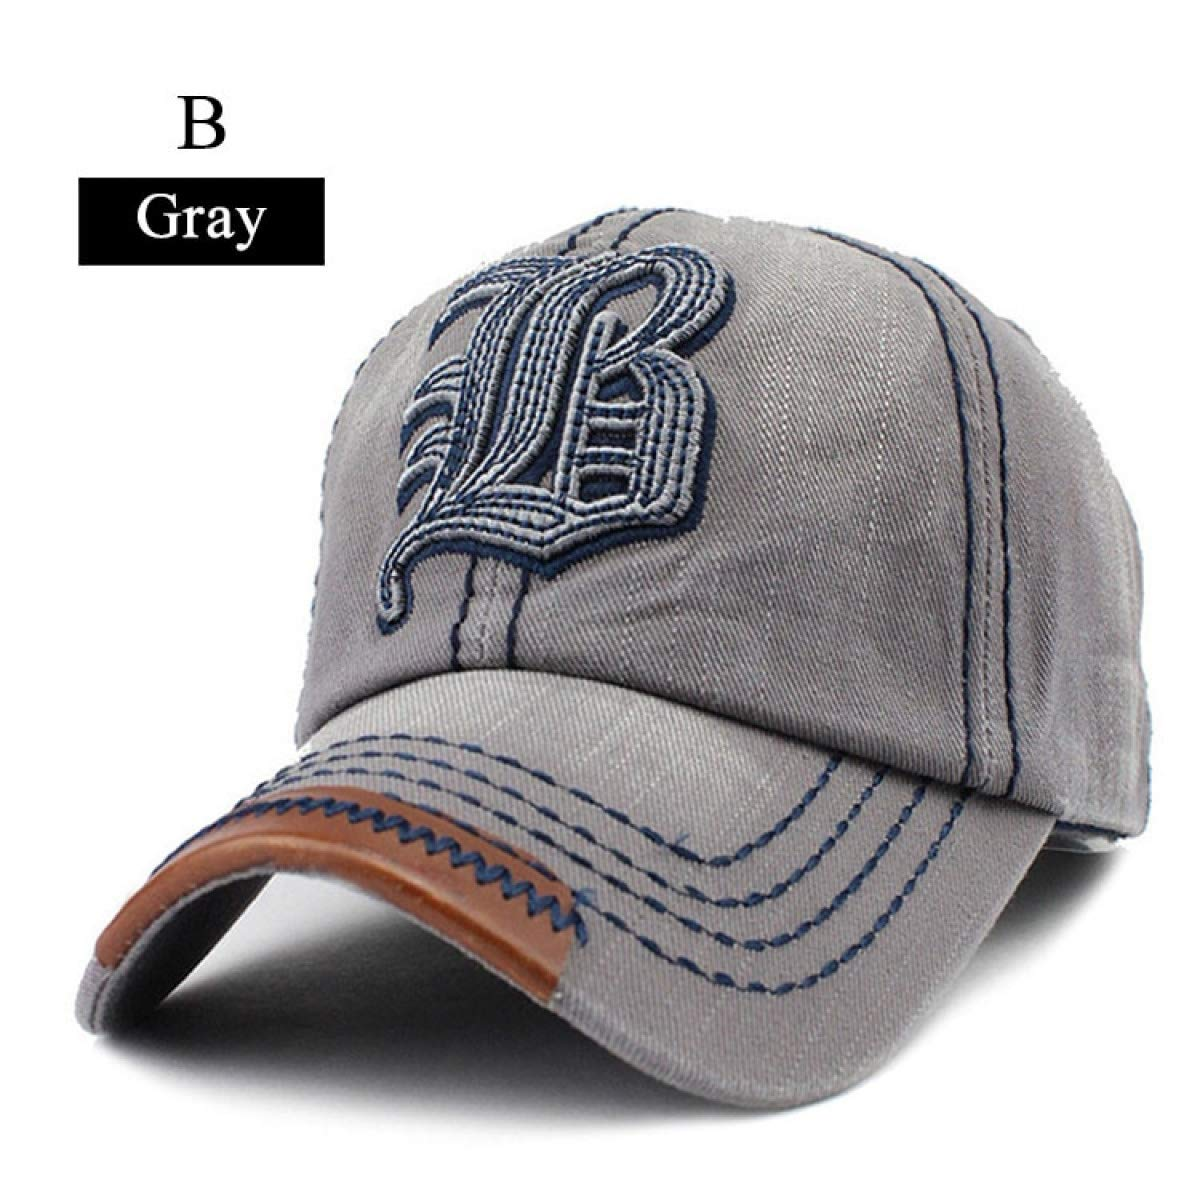 Cap for Men and Women Gorras Snapback Caps Baseball Caps Cap dad hat B Gray at Amazon Mens Clothing store: